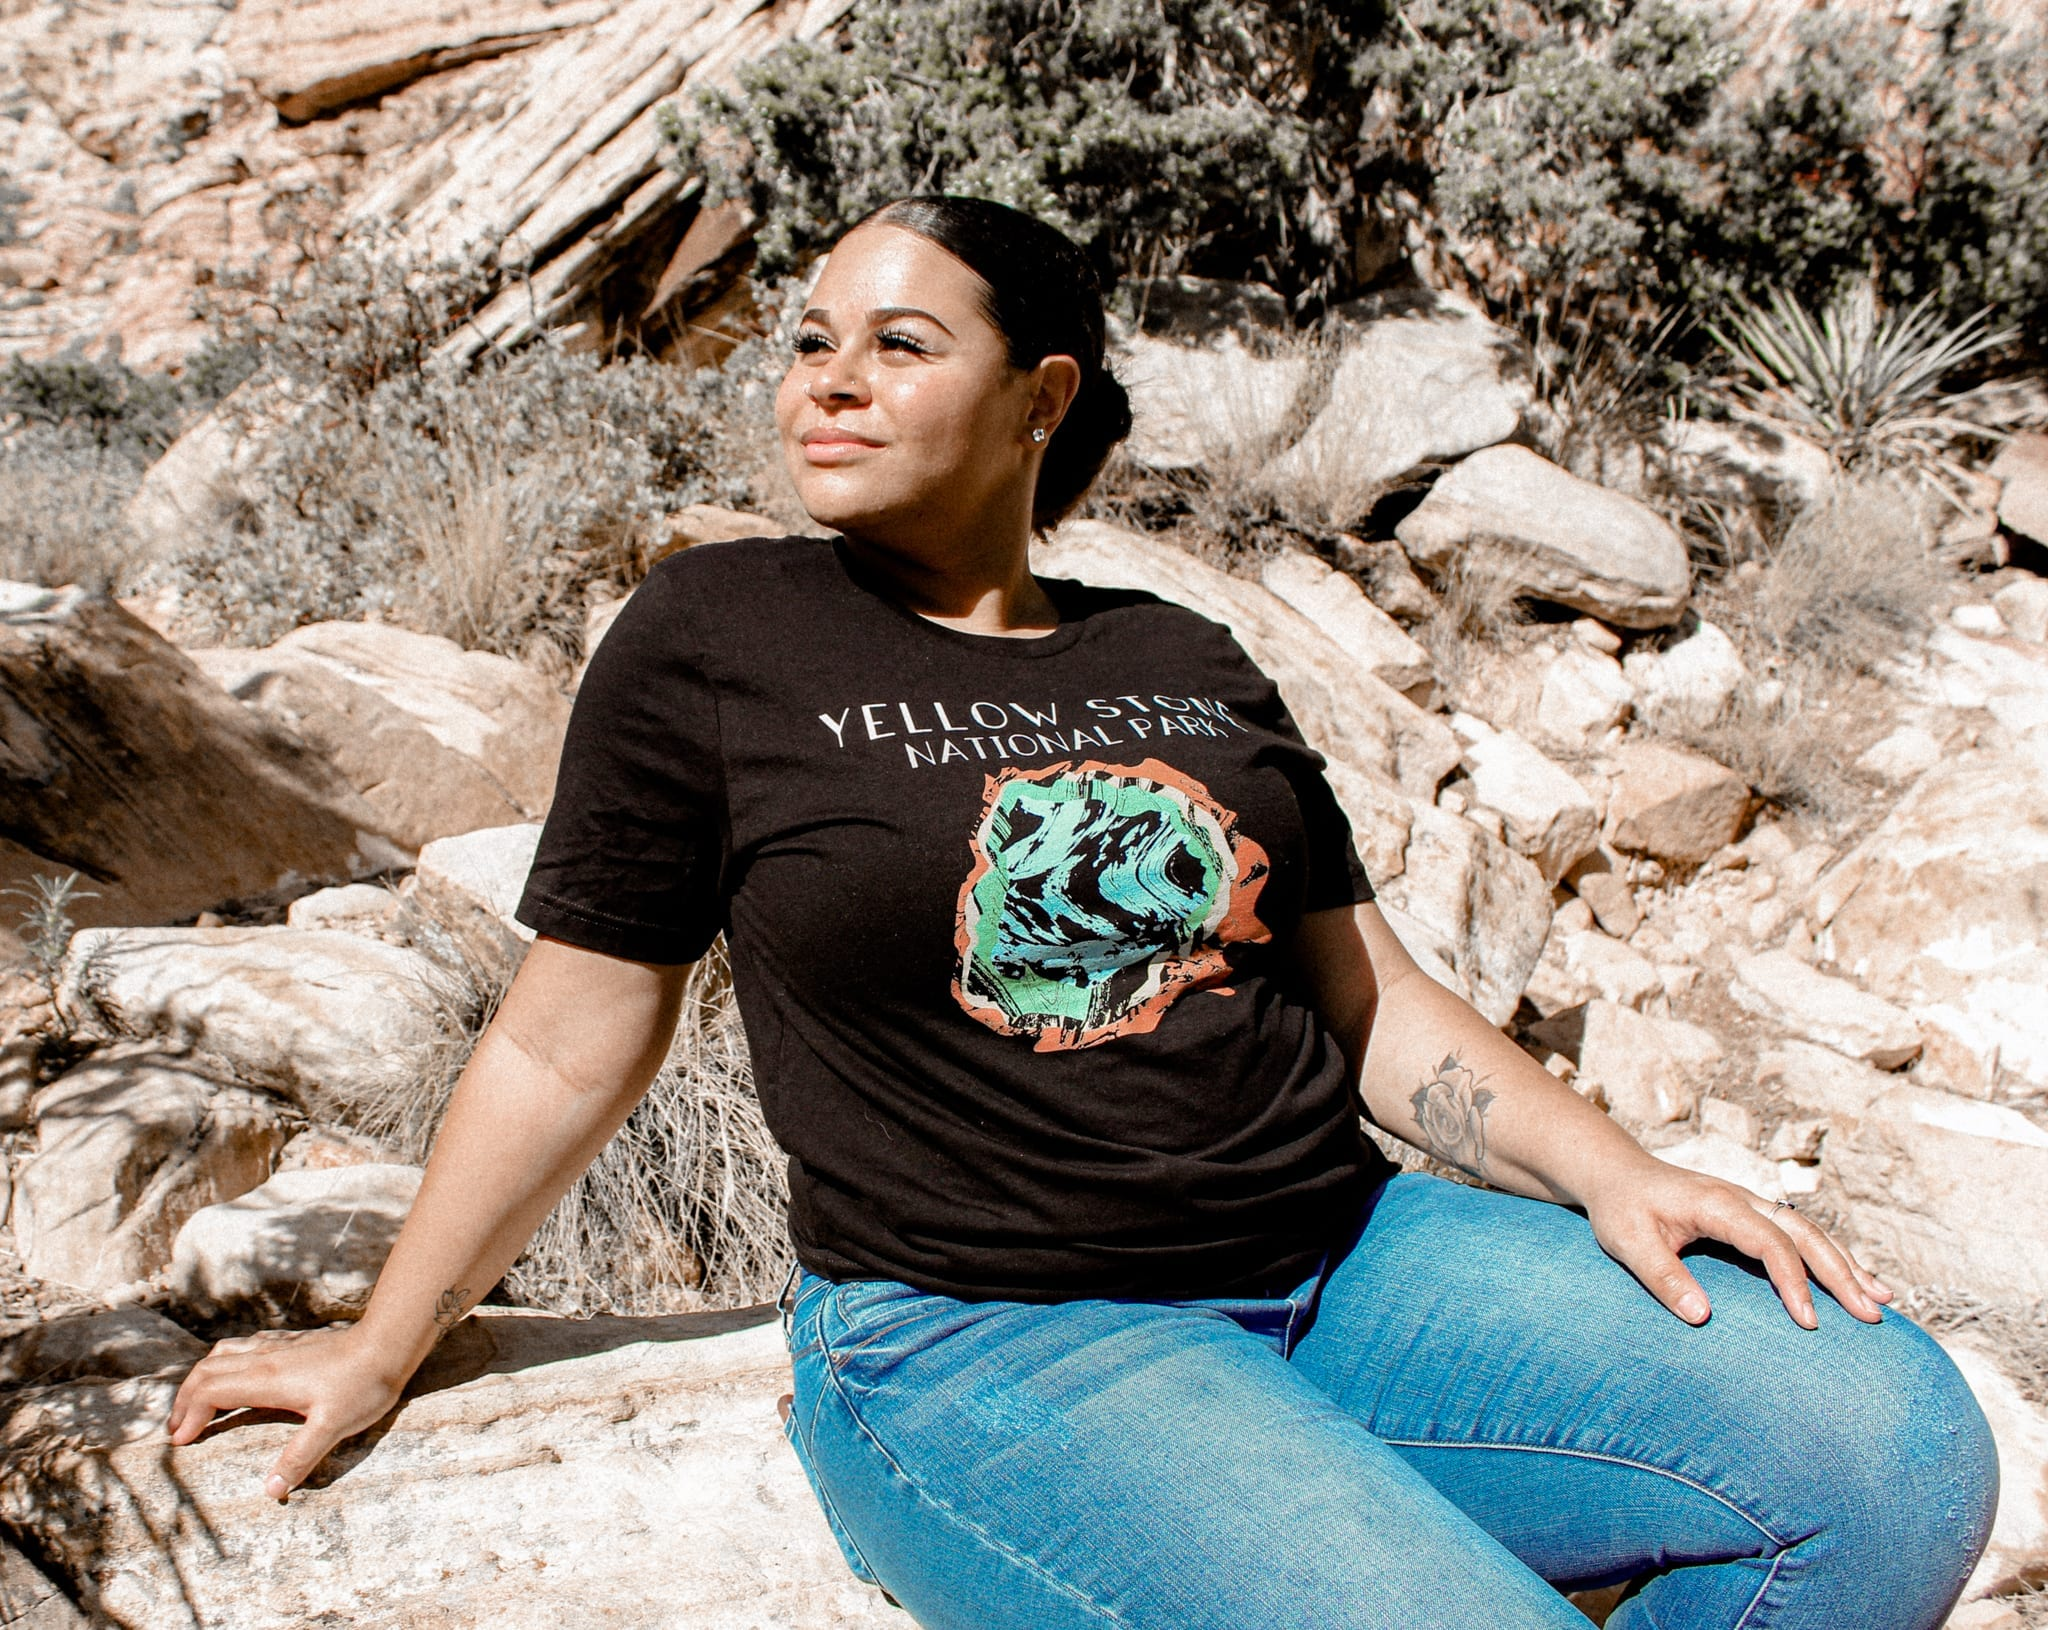 Woman in the mountains, with yellowstone t-shirt